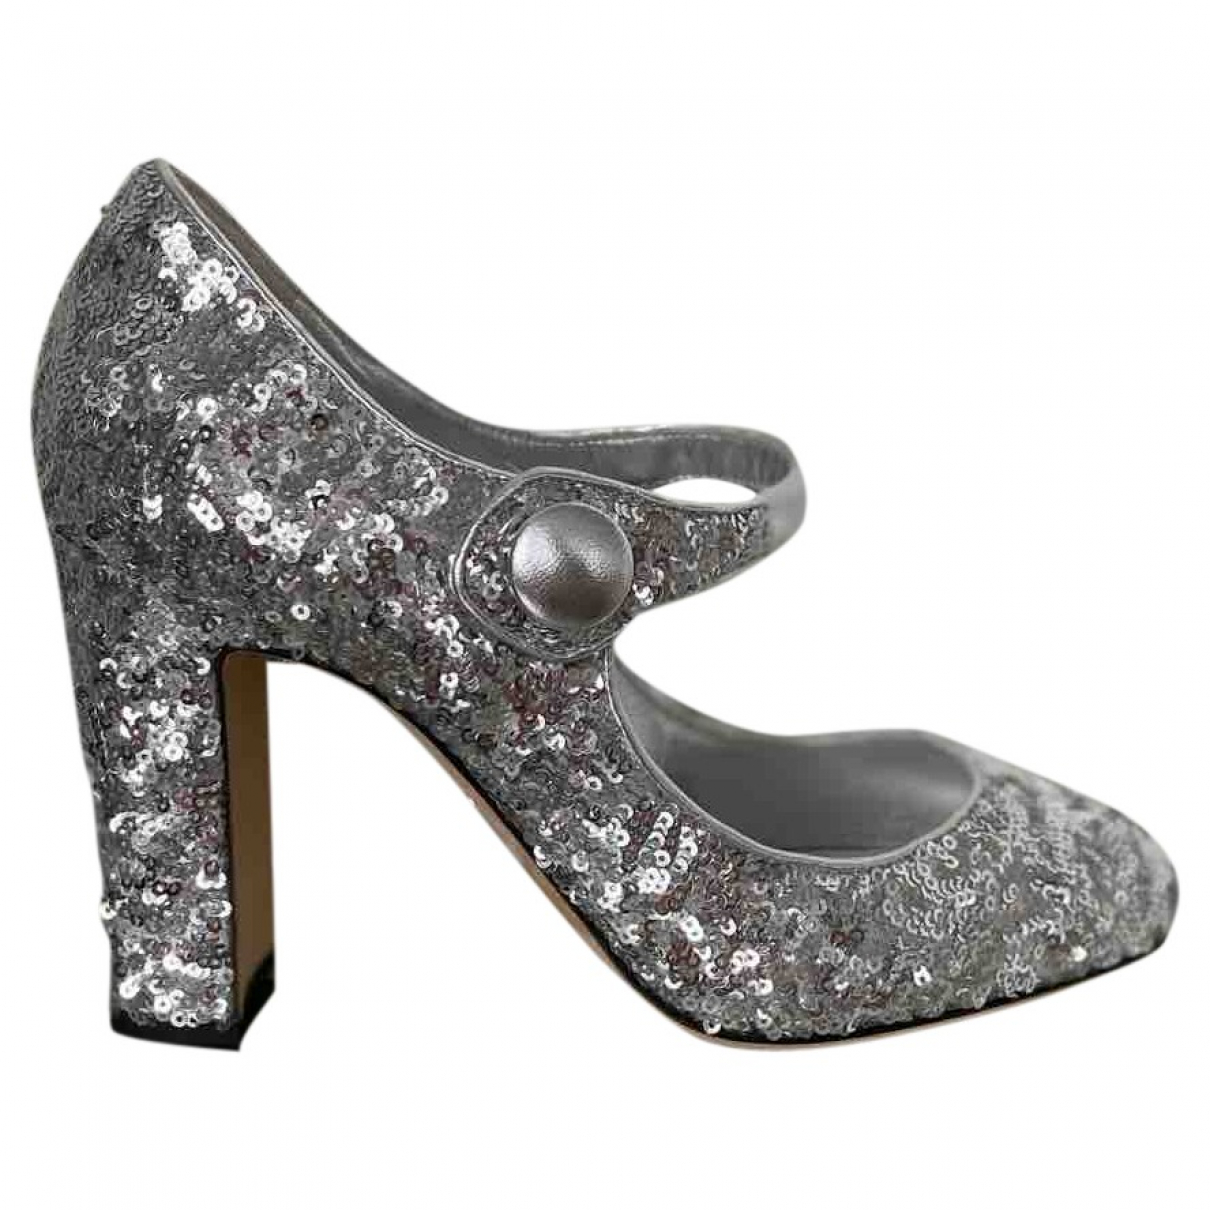 Dolce & Gabbana \N Pumps in  Silber Mit Pailletten